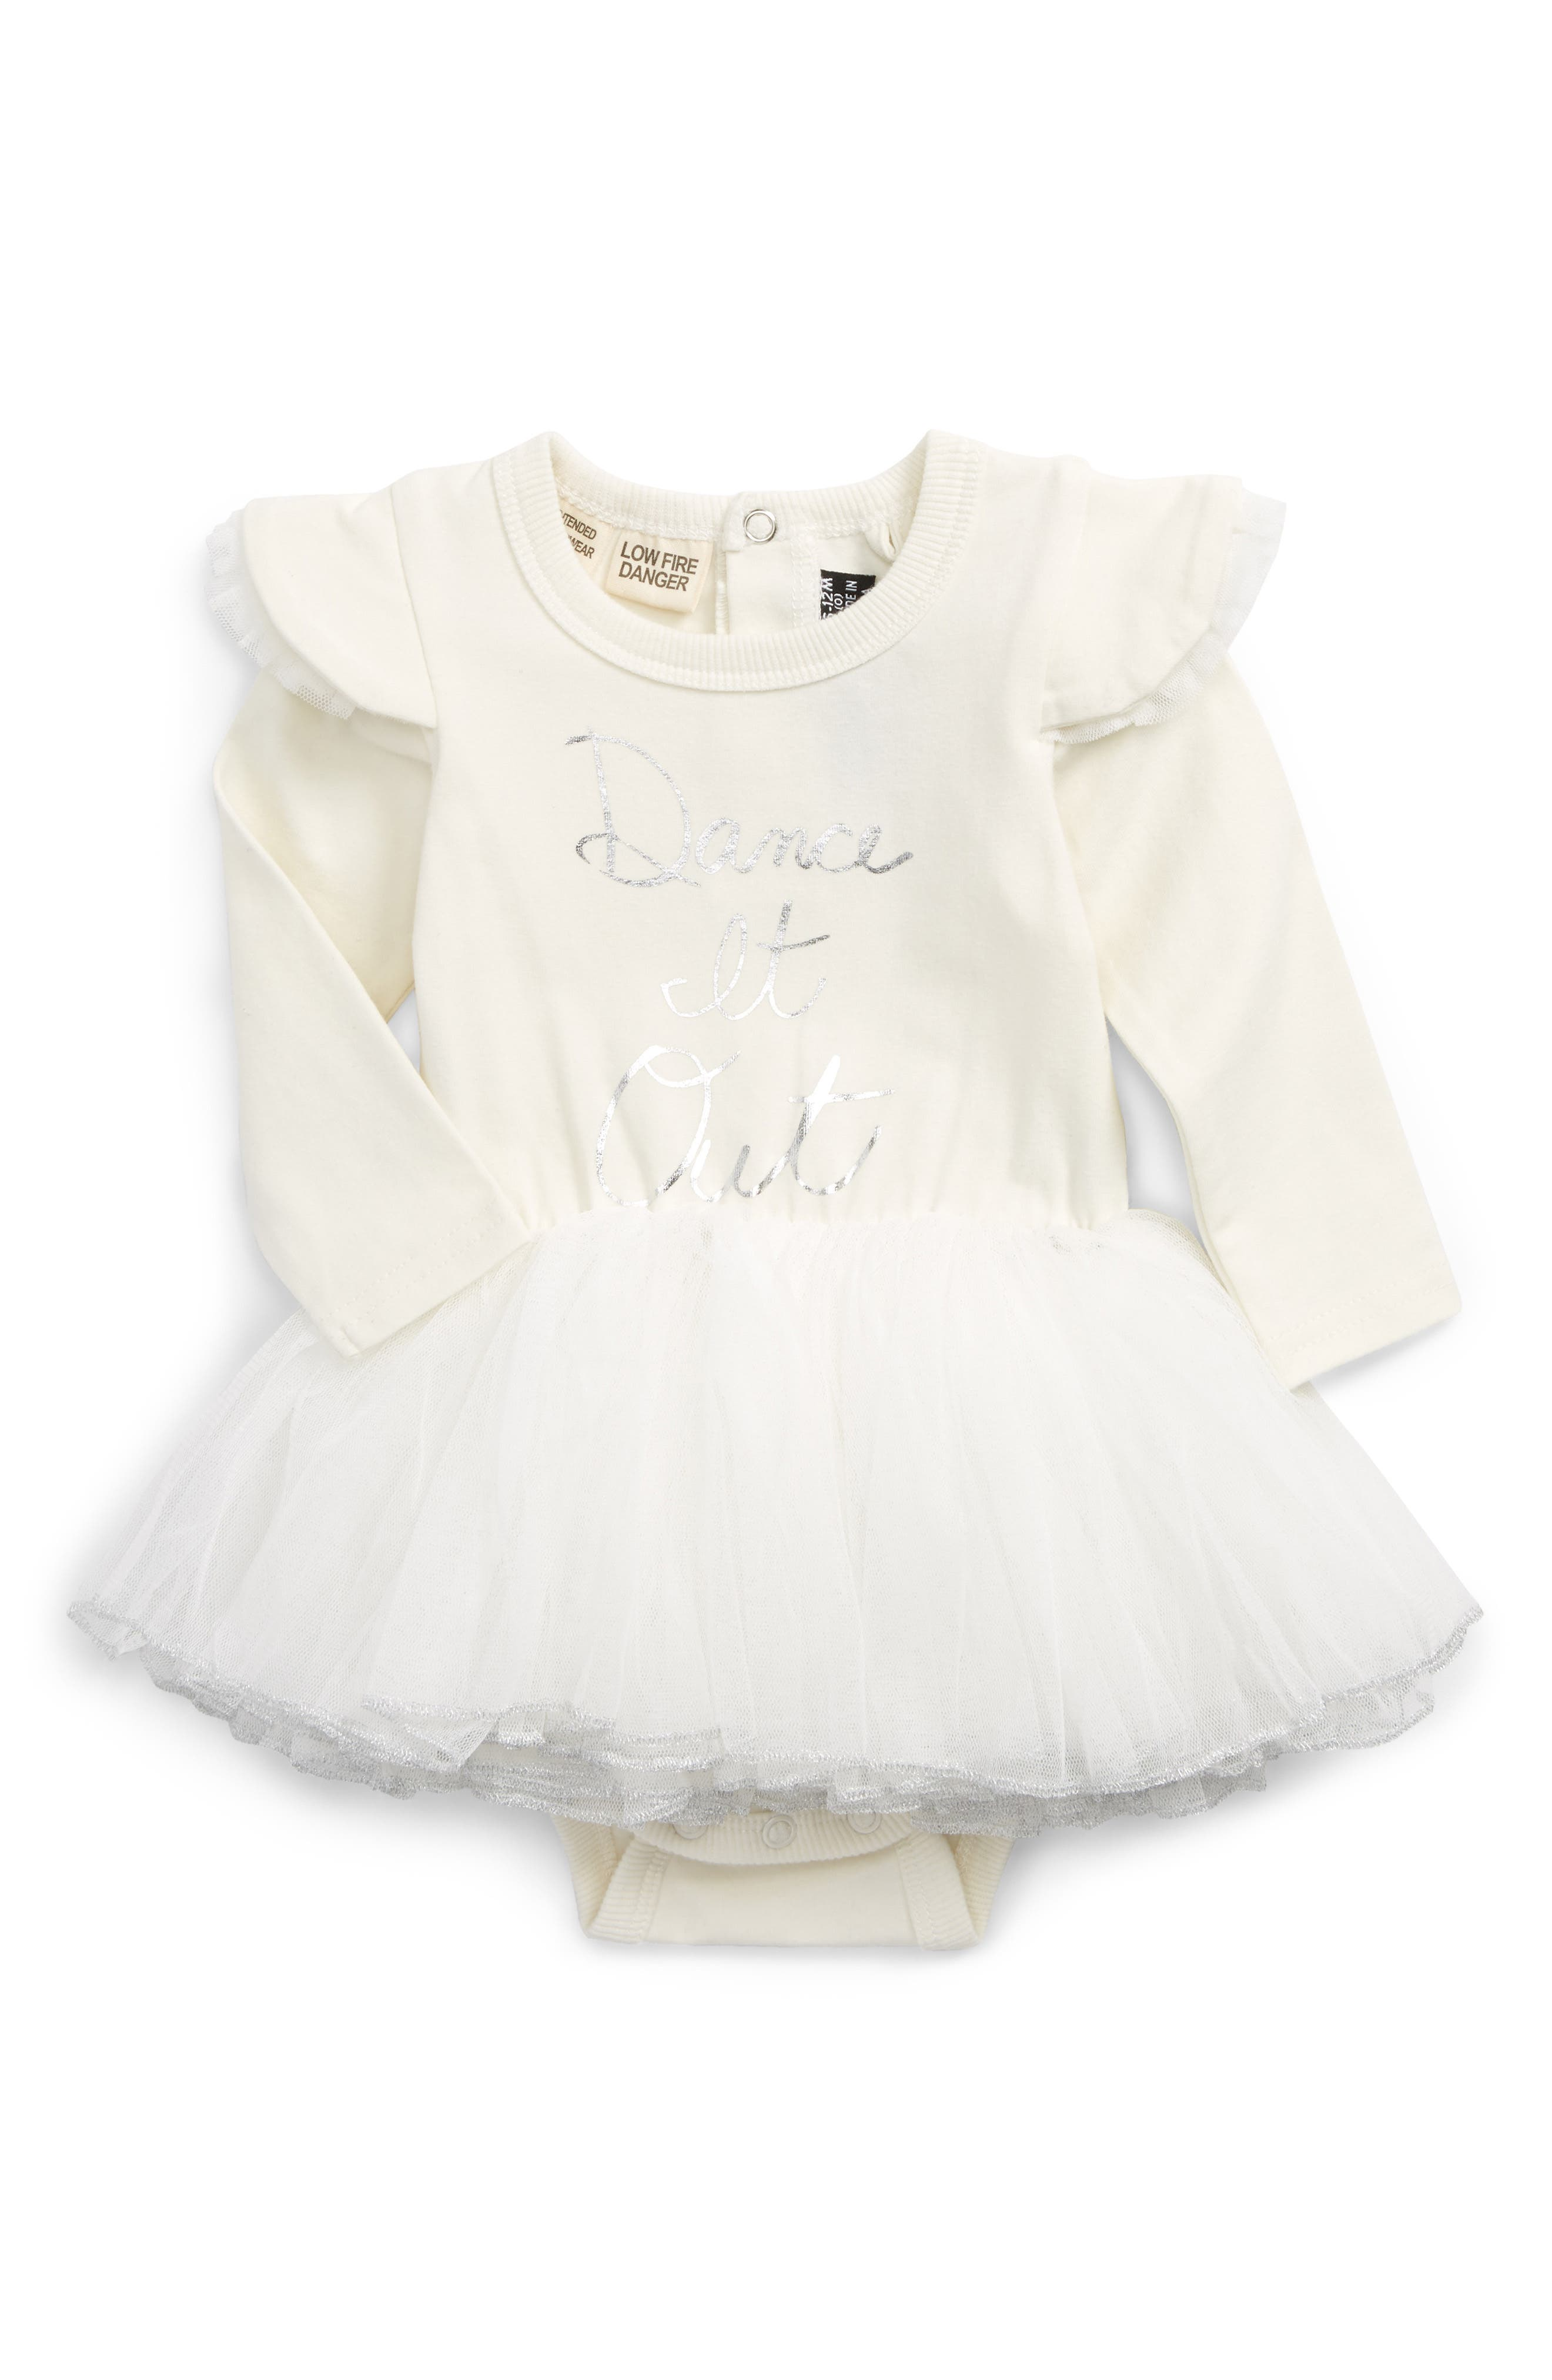 Alternate Image 1 Selected - Rock Your Baby Dance It Out Circus Tutu Bodysuit (Baby)